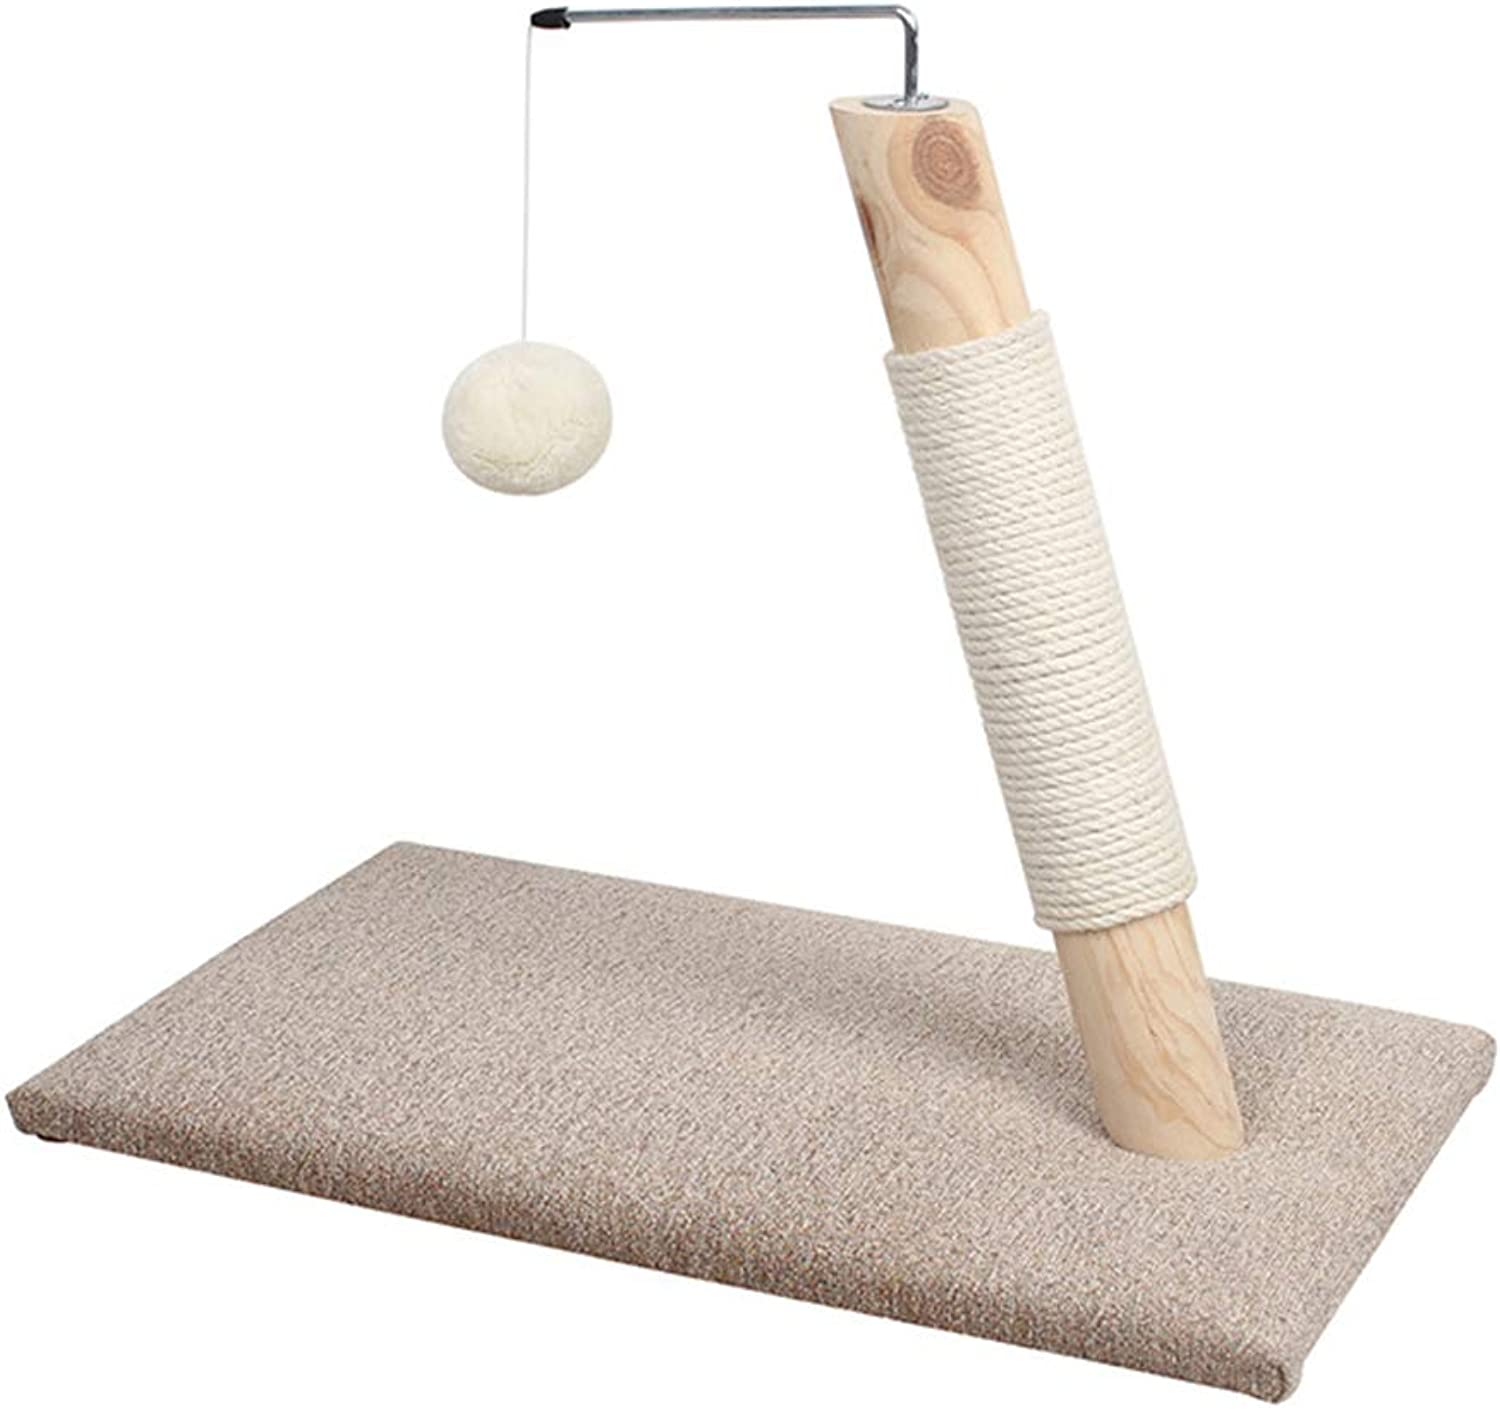 Cat Climbing Frame, Solid Wood Sisal Cat Claw, Cat Bed, Cat Scratch Board, Cat Jumping Platform, Pet Toy